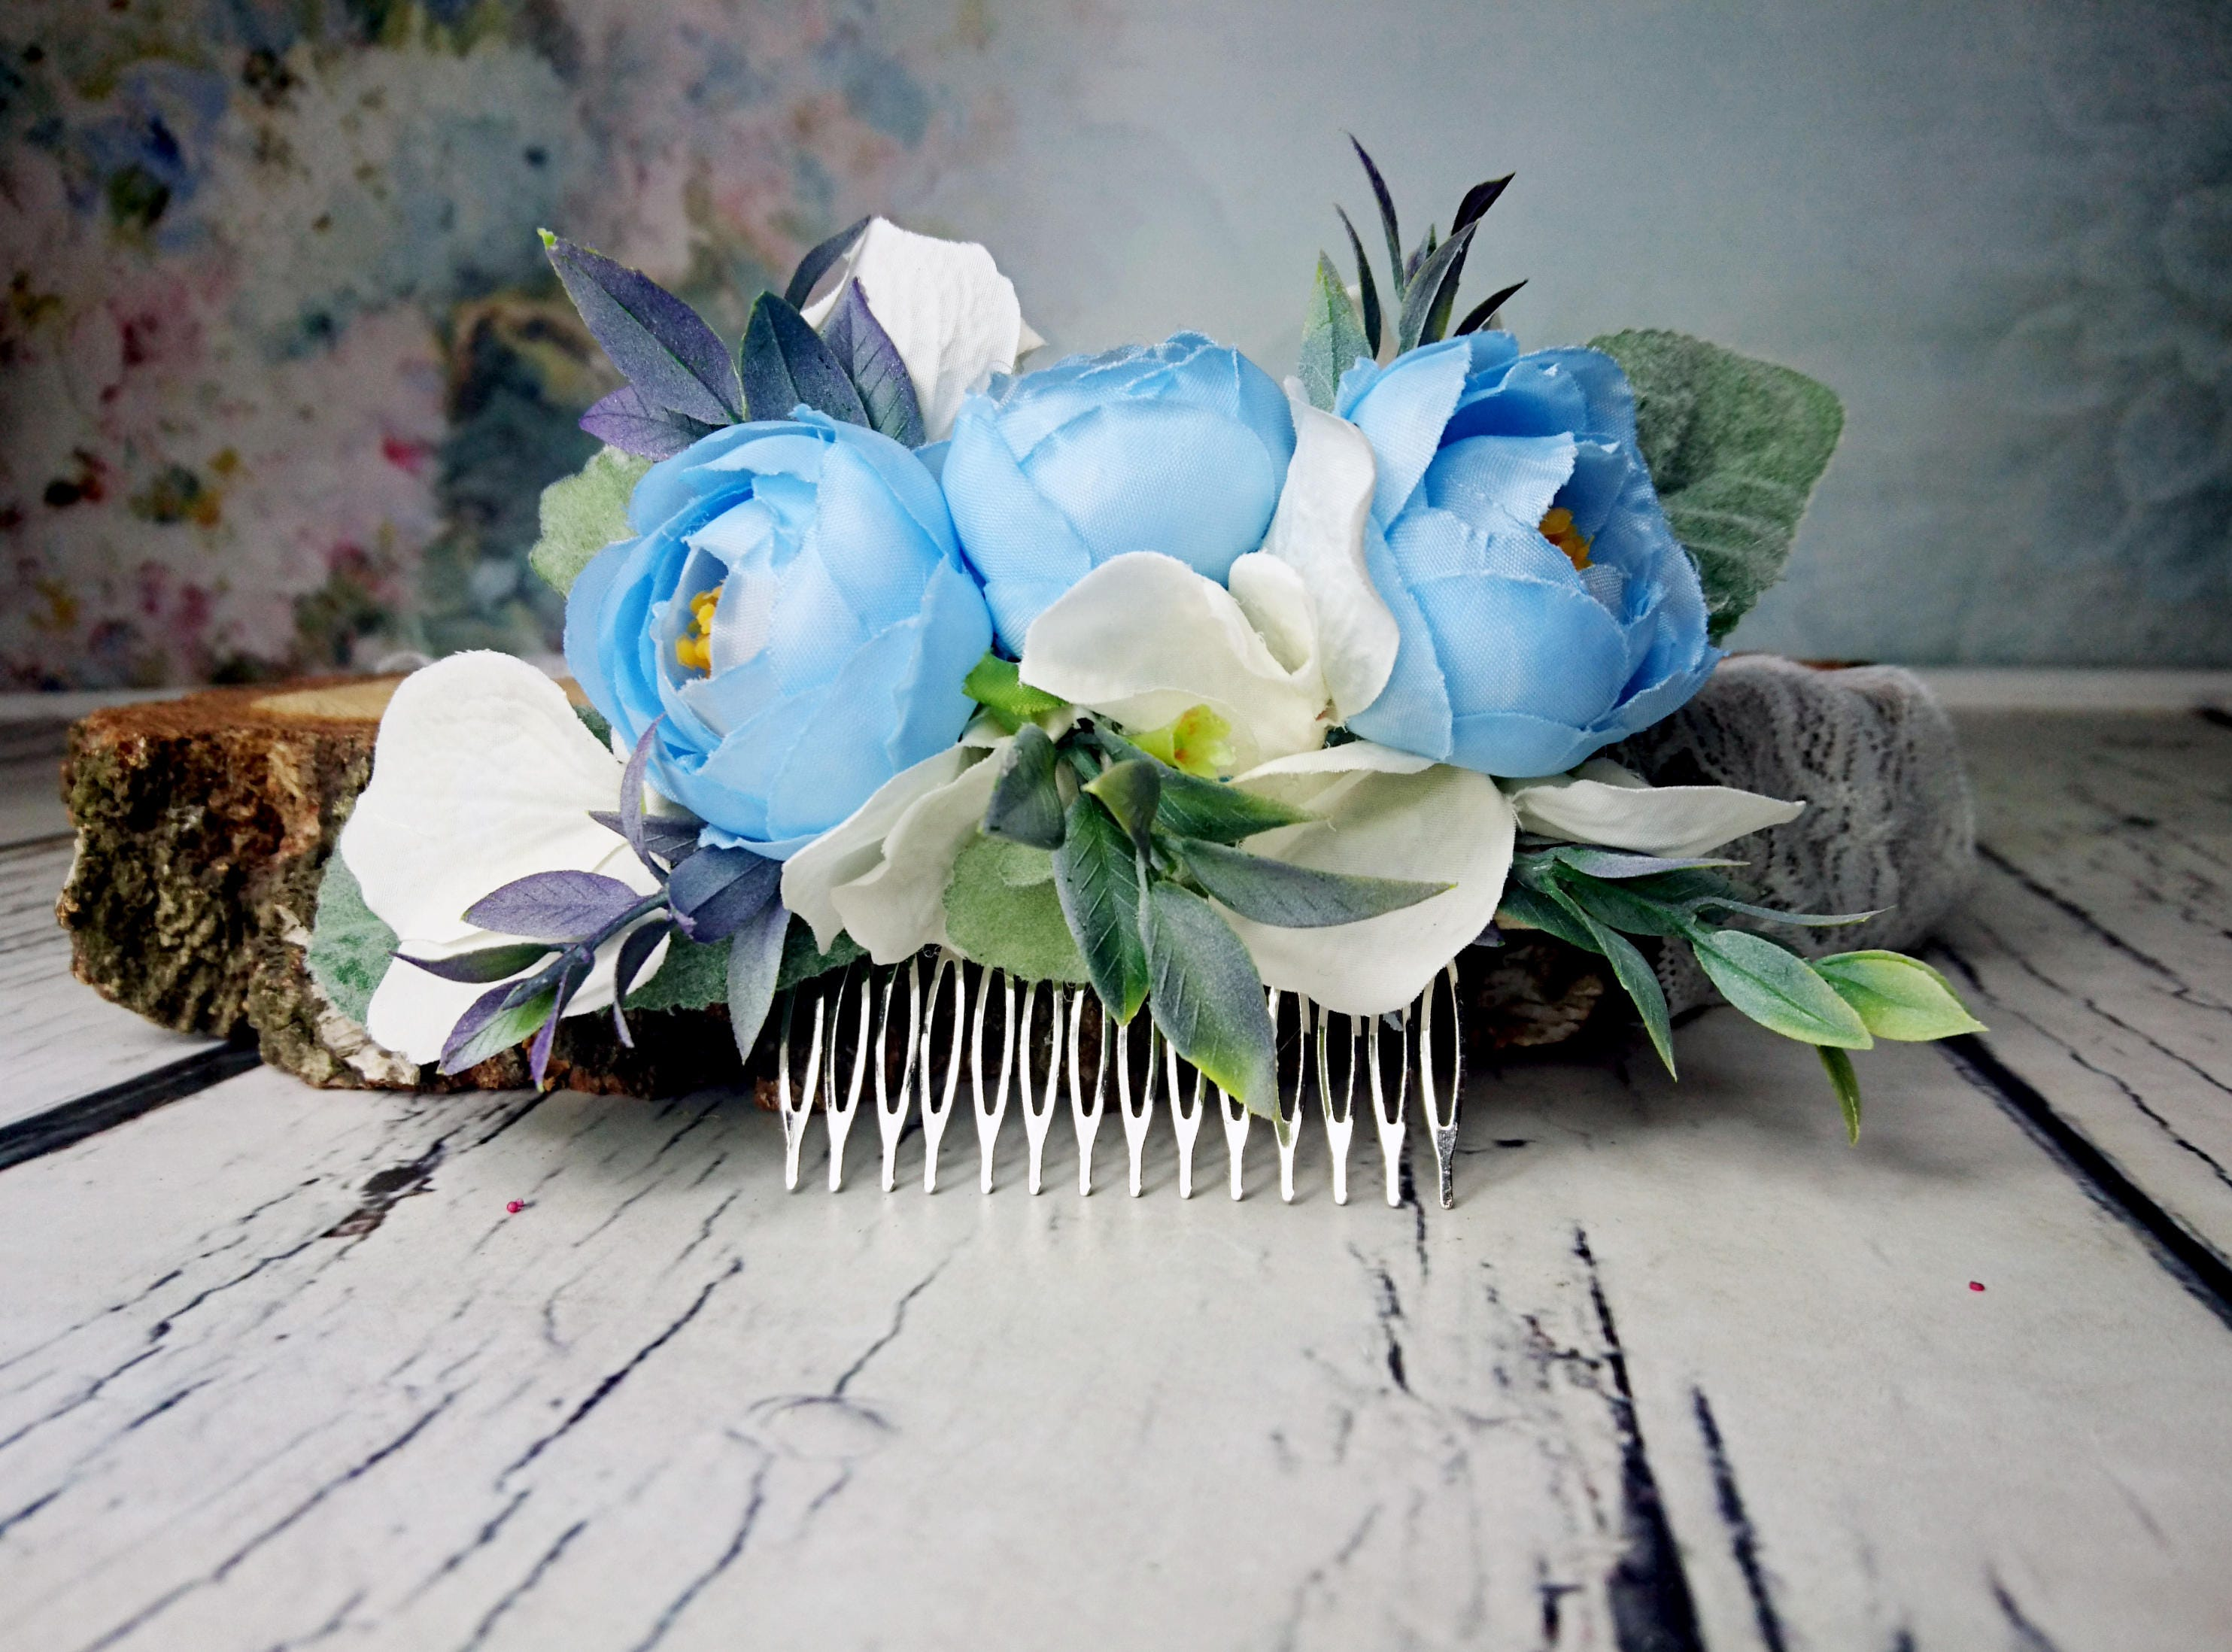 Pastel blue white greenery cold green rustic hair comb silk flowers pastel blue white greenery cold green rustic hair comb silk flowers peony ranunculus hydrangea dusty miller hair piece bridal accessory izmirmasajfo Gallery